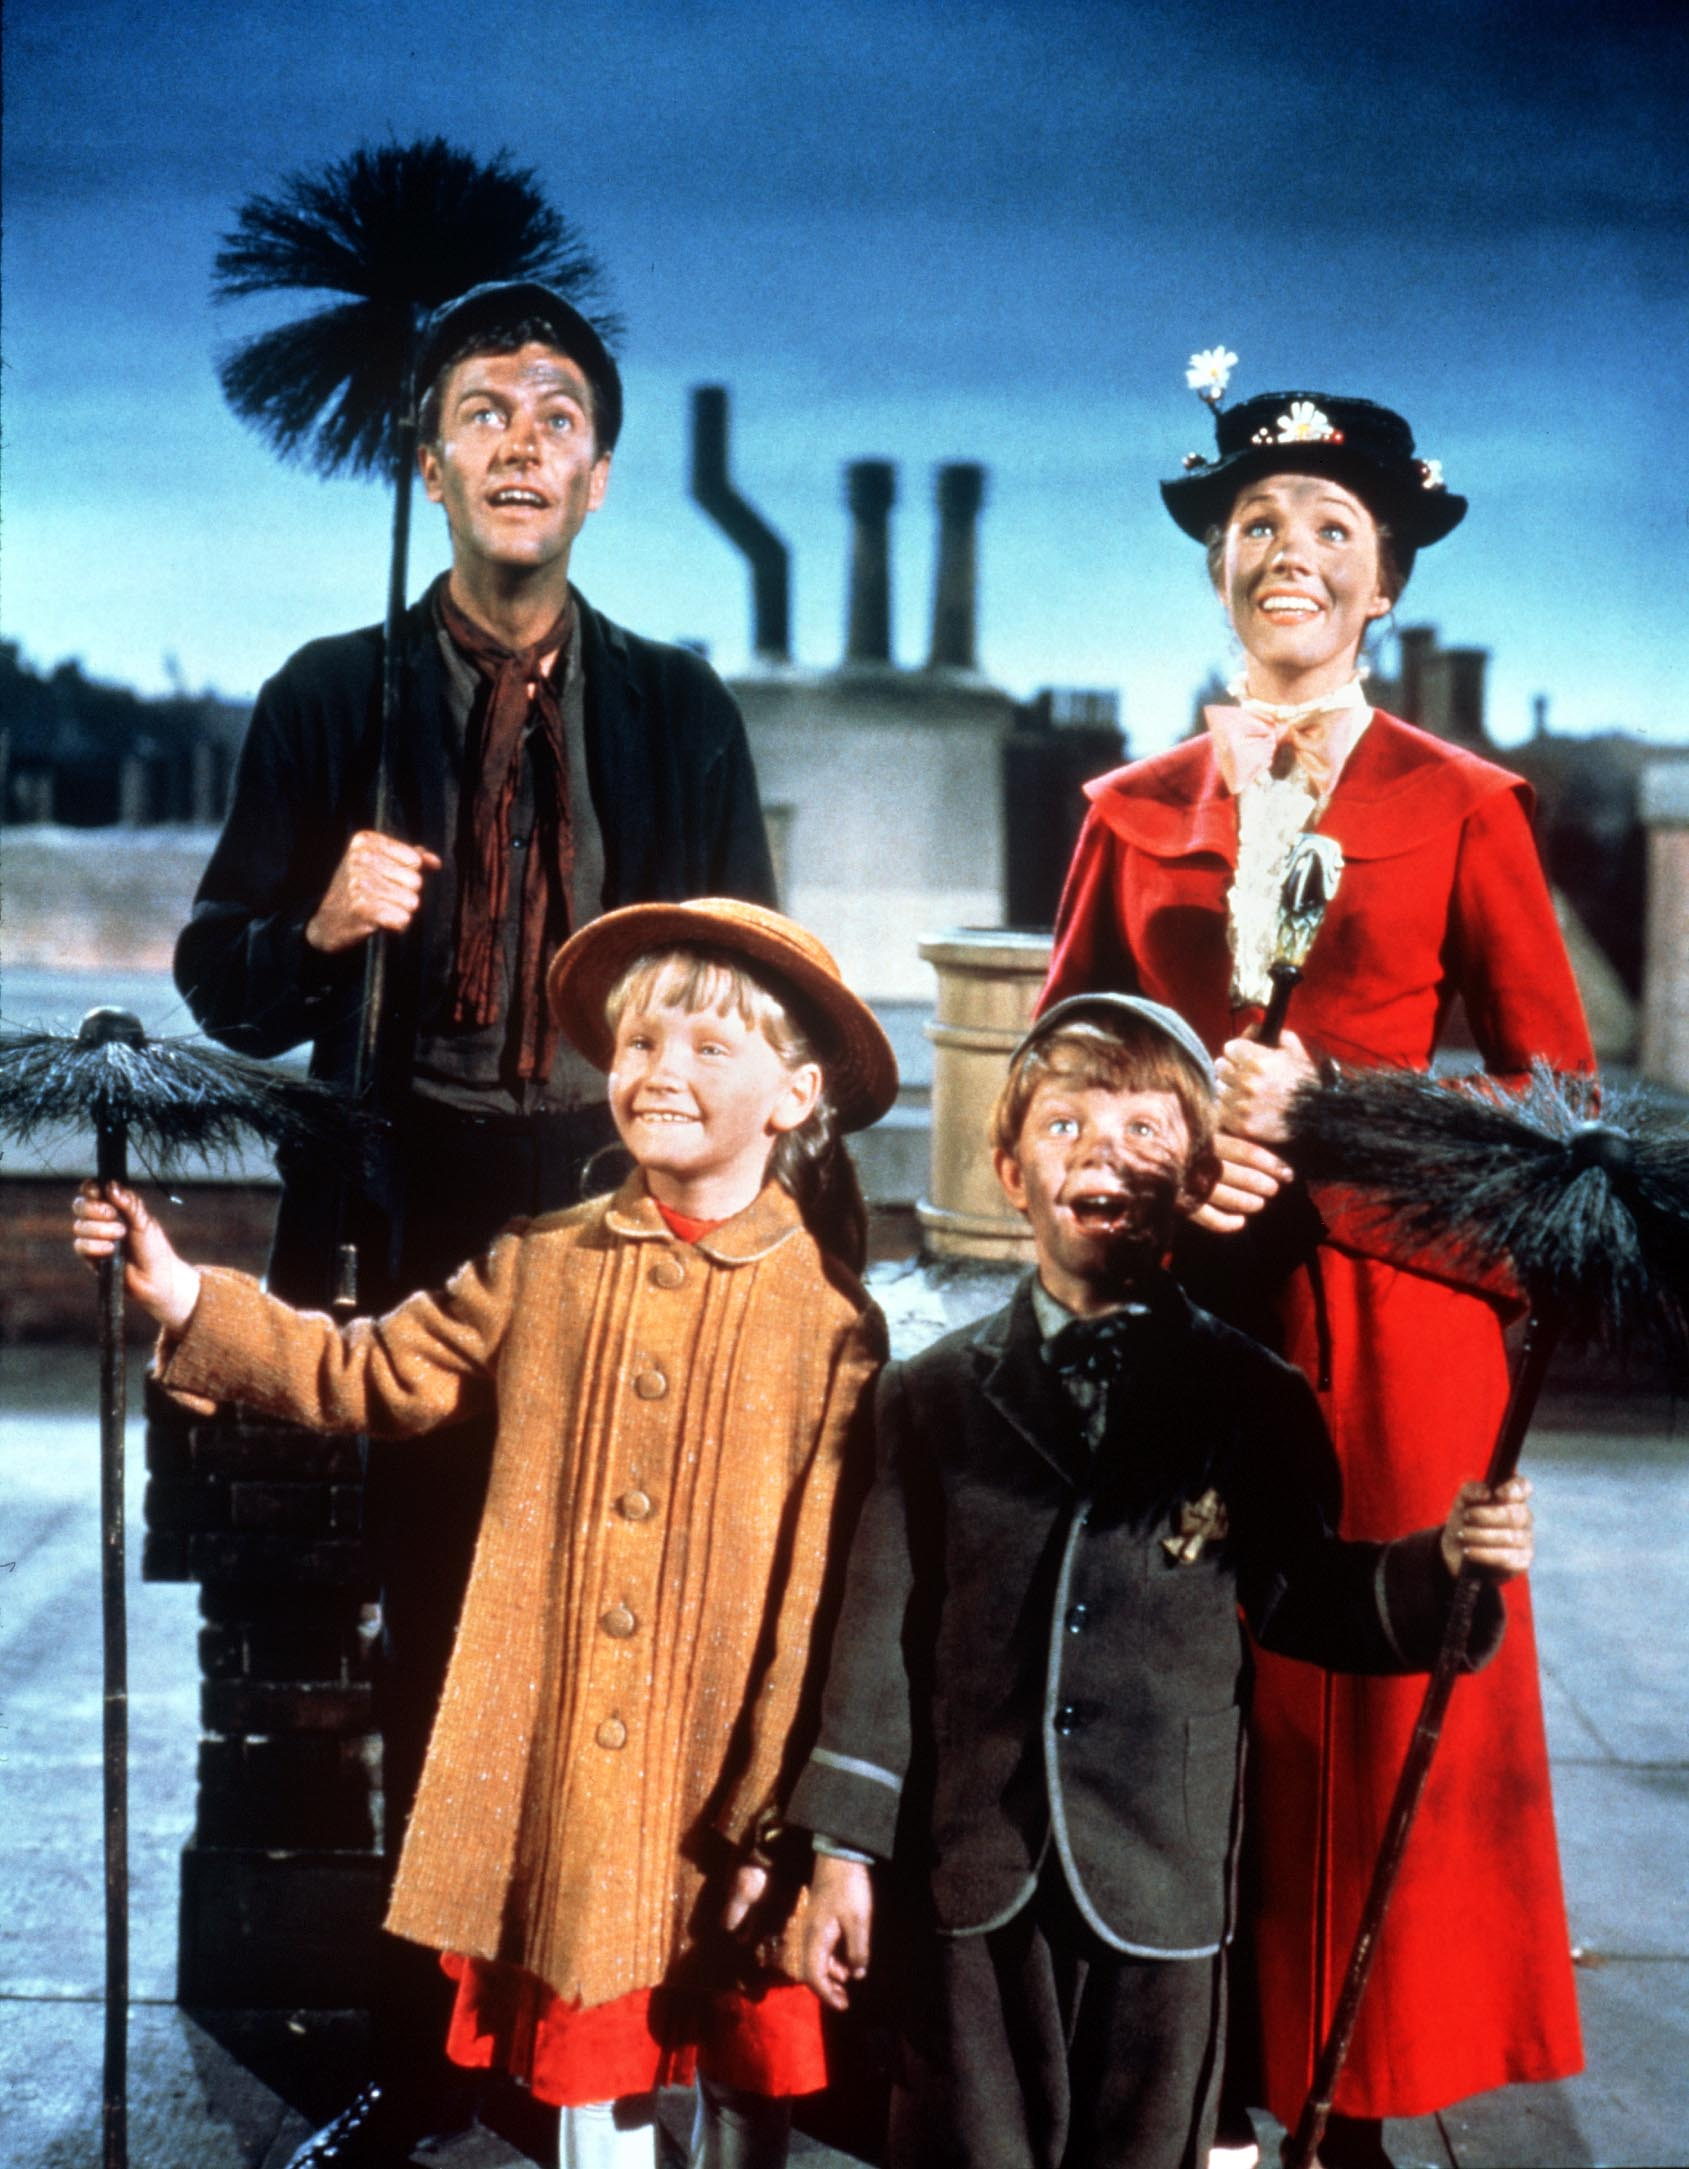 Is 'Mary Poppins' racist and using blackface? Twitter is not having it